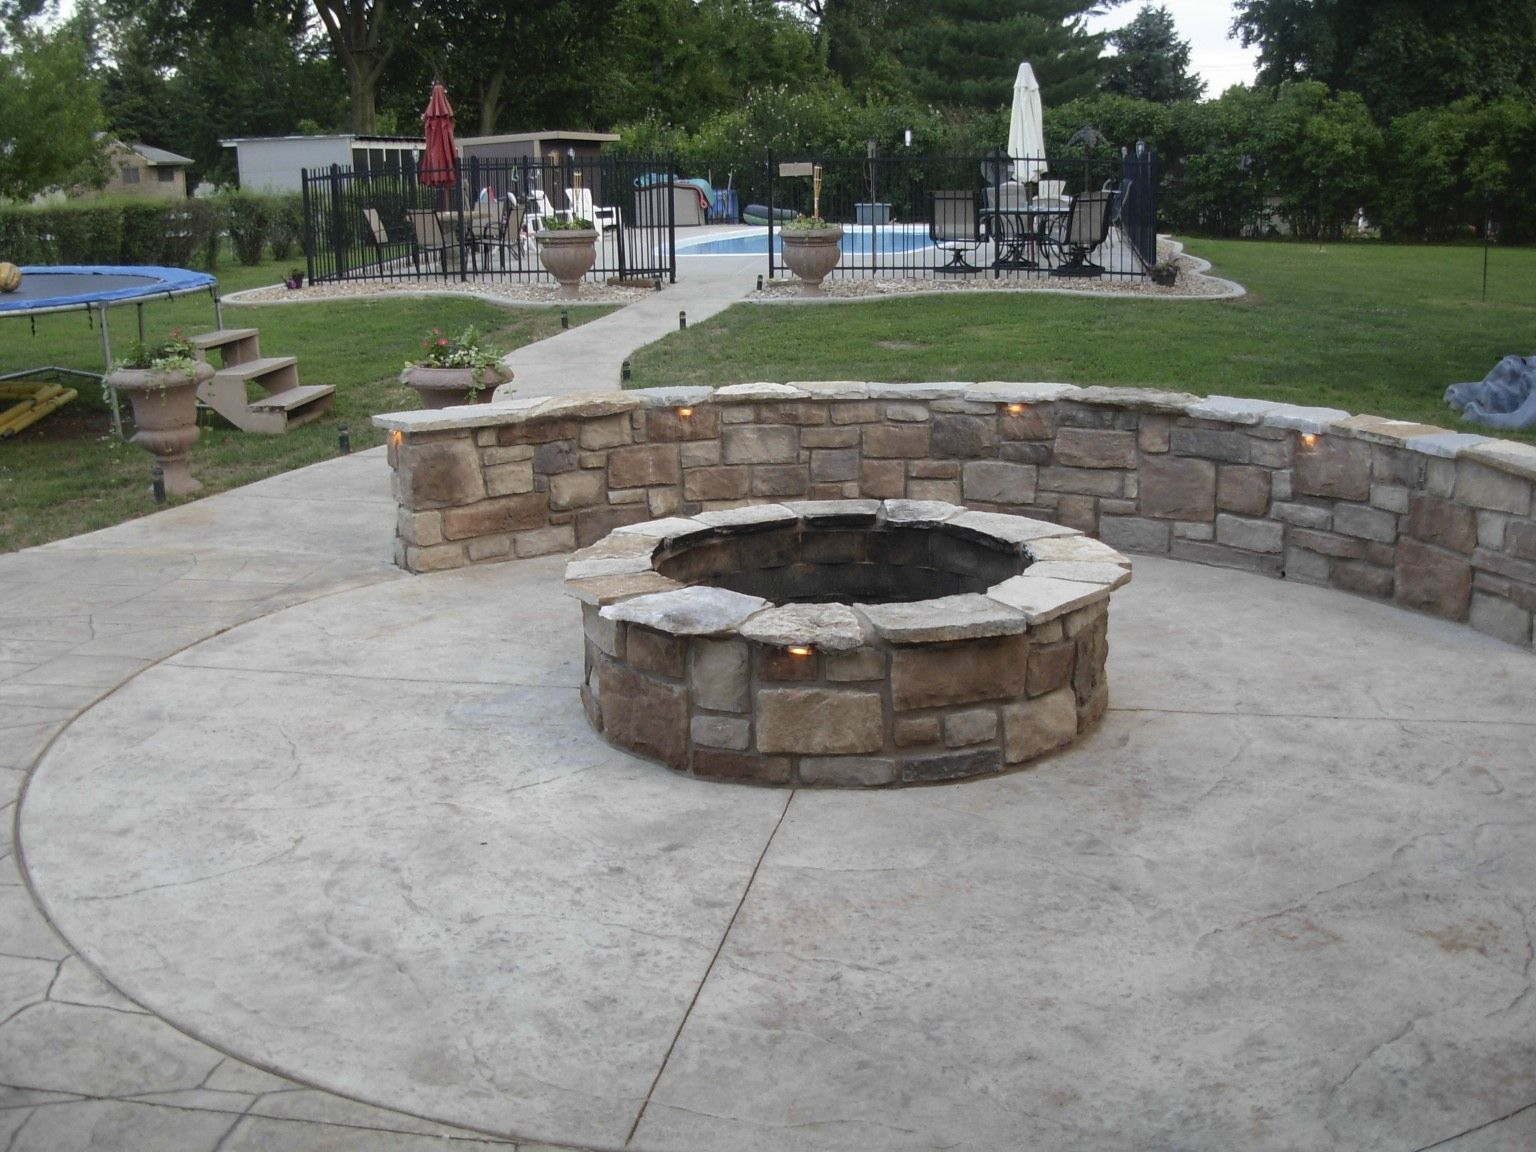 Patio Designs With Fire Pit Sitting Walls Warm Up This Fall And